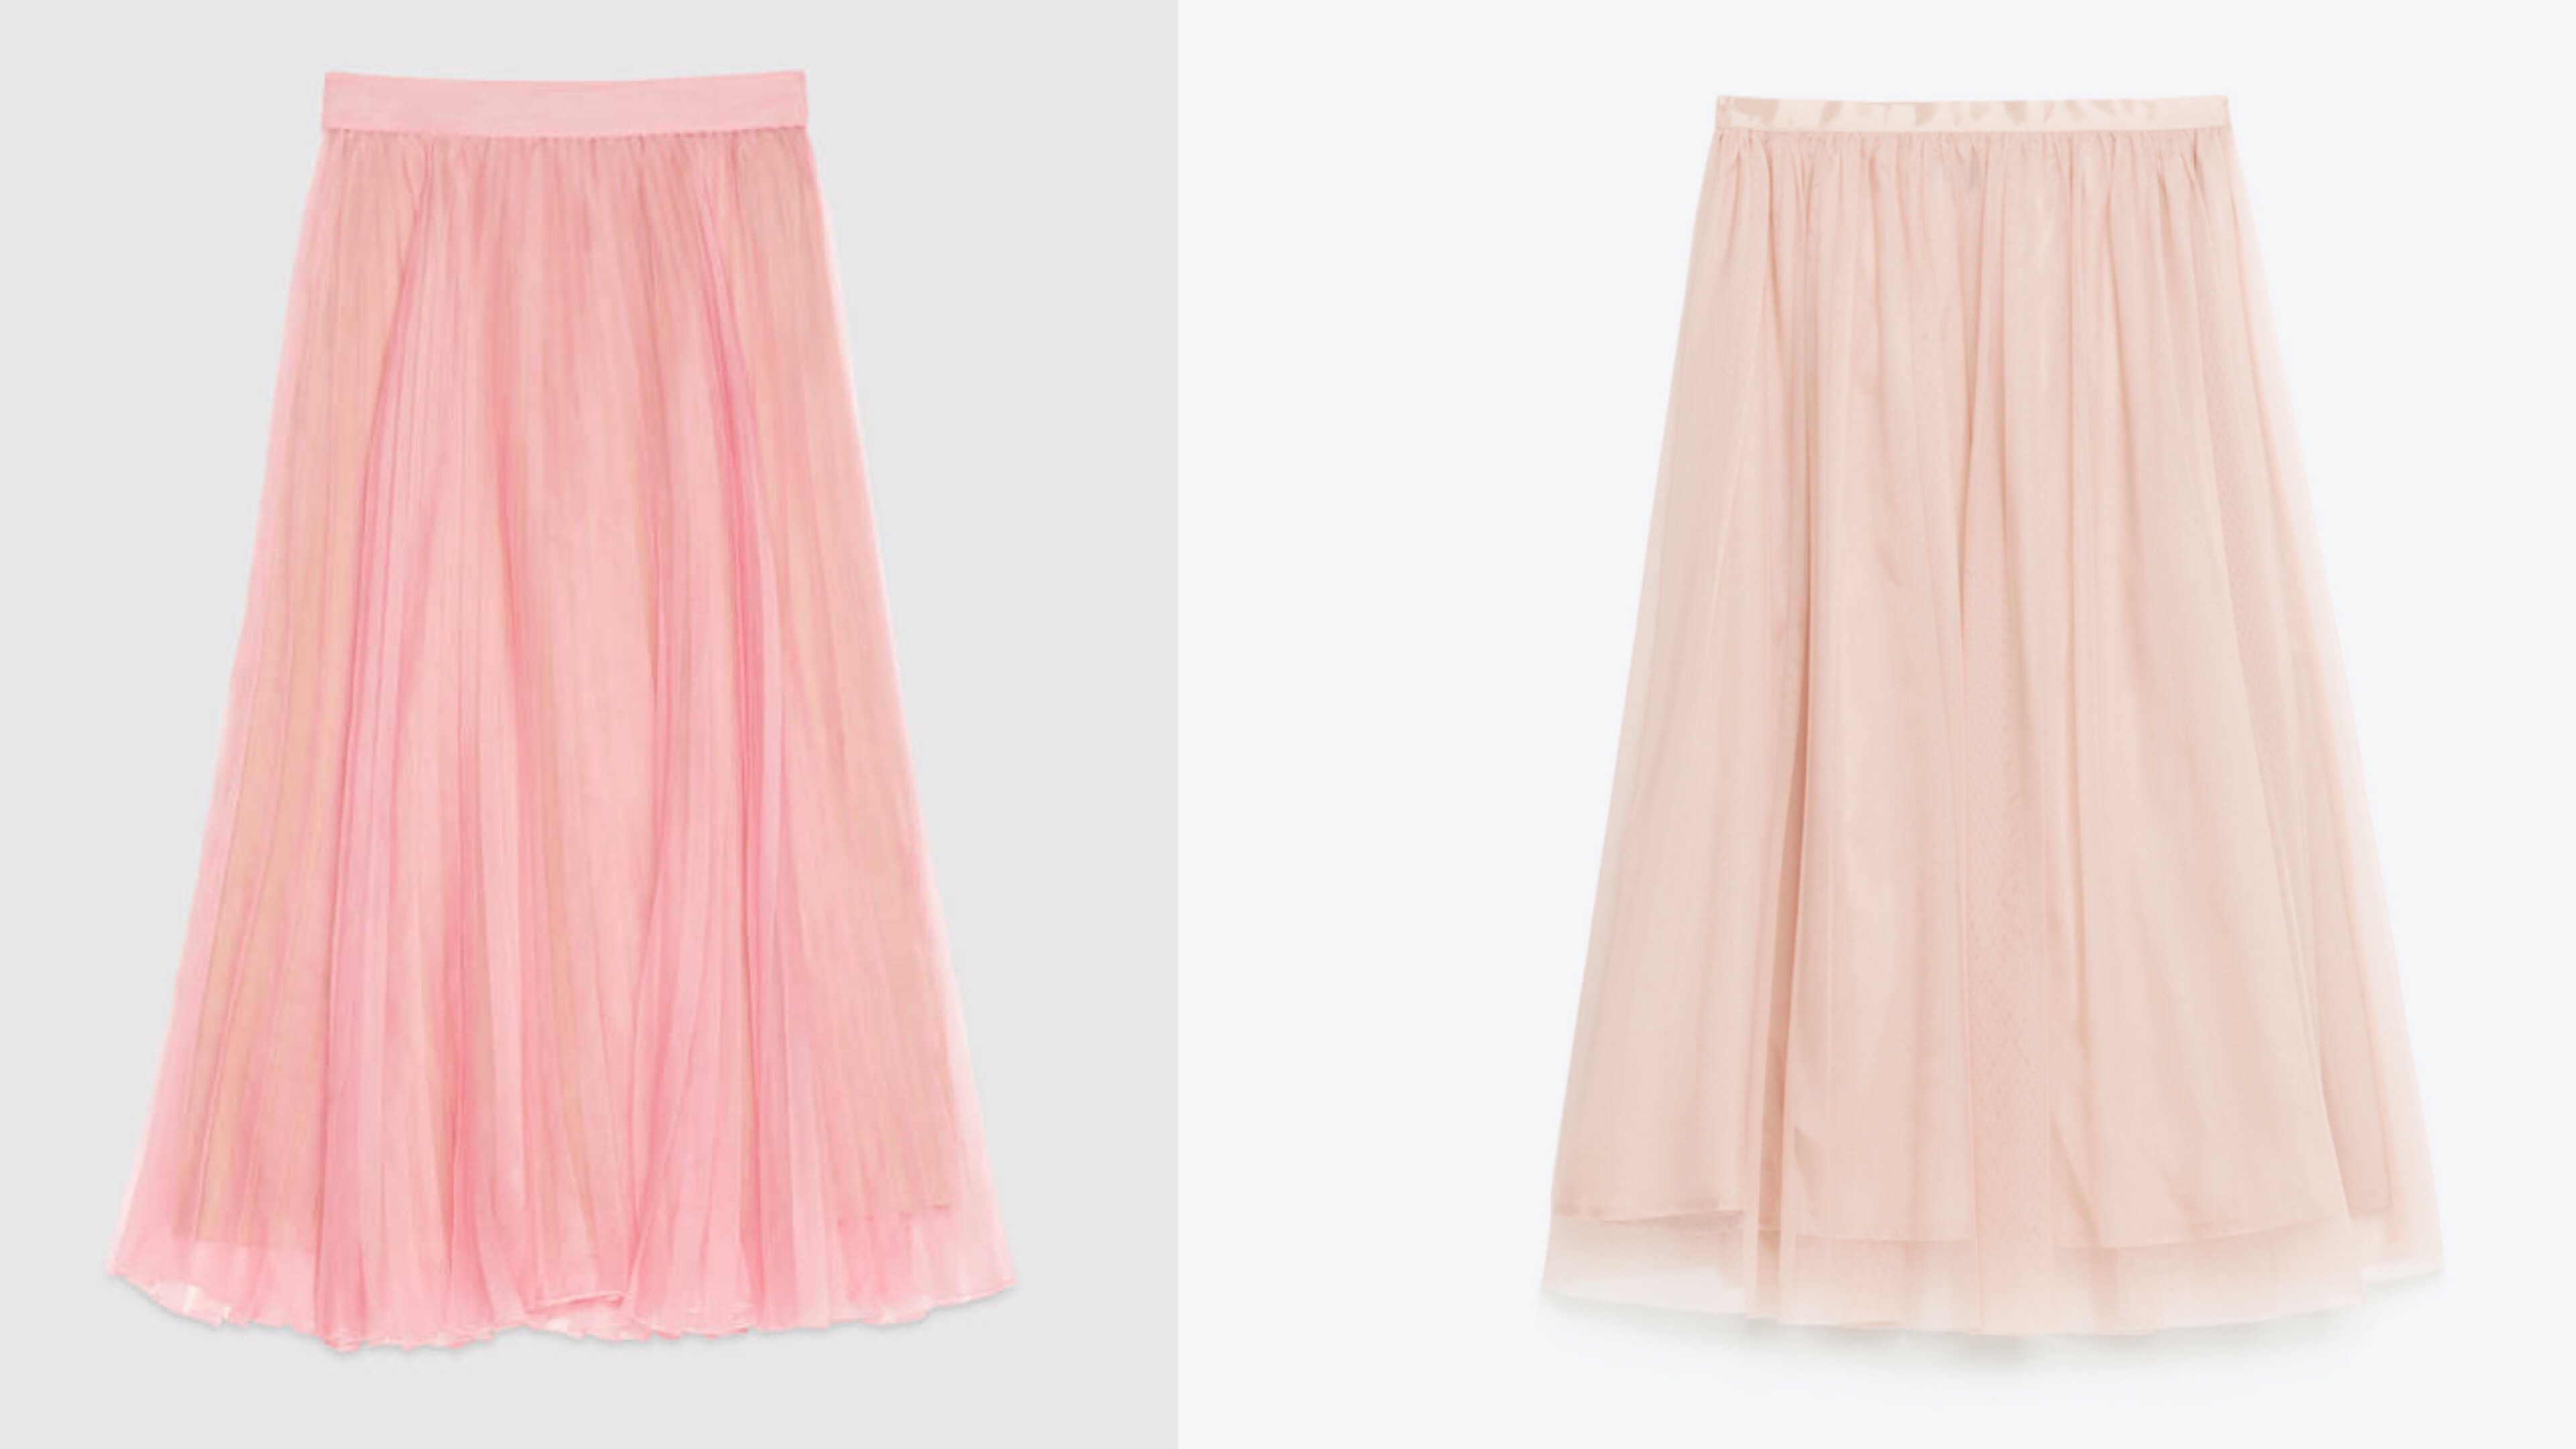 Gucci and Zara Pink Tulle Skirts